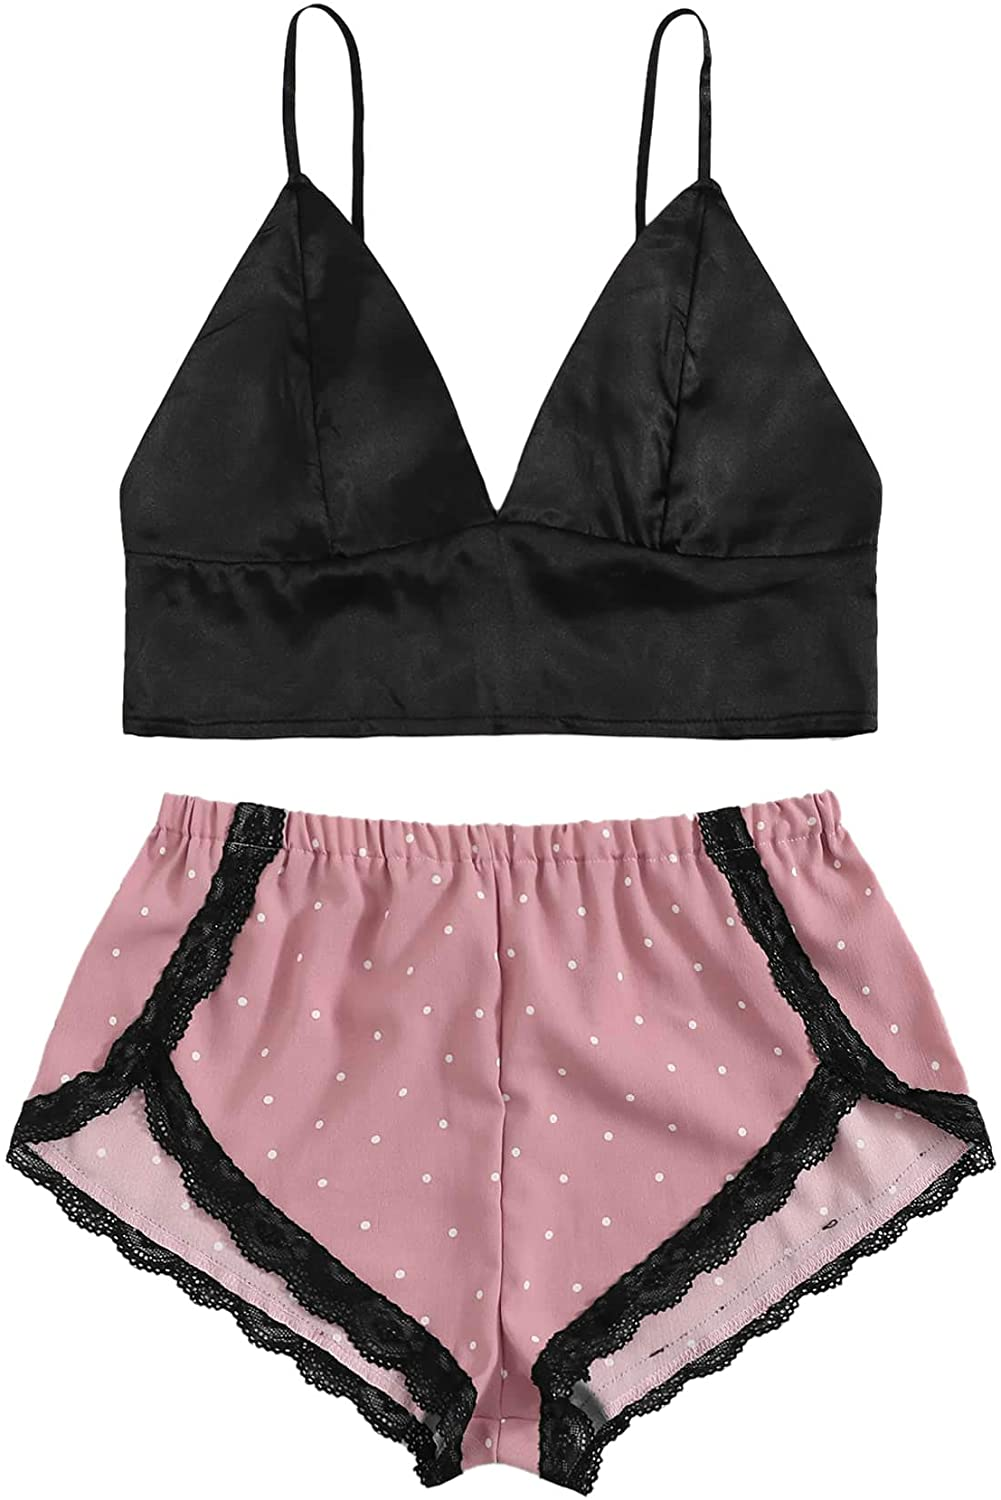 SOLY HUX Womens 2 Piece Outfit Satin Pajama Set Bralette and Lace Trim Shorts Sleepwear